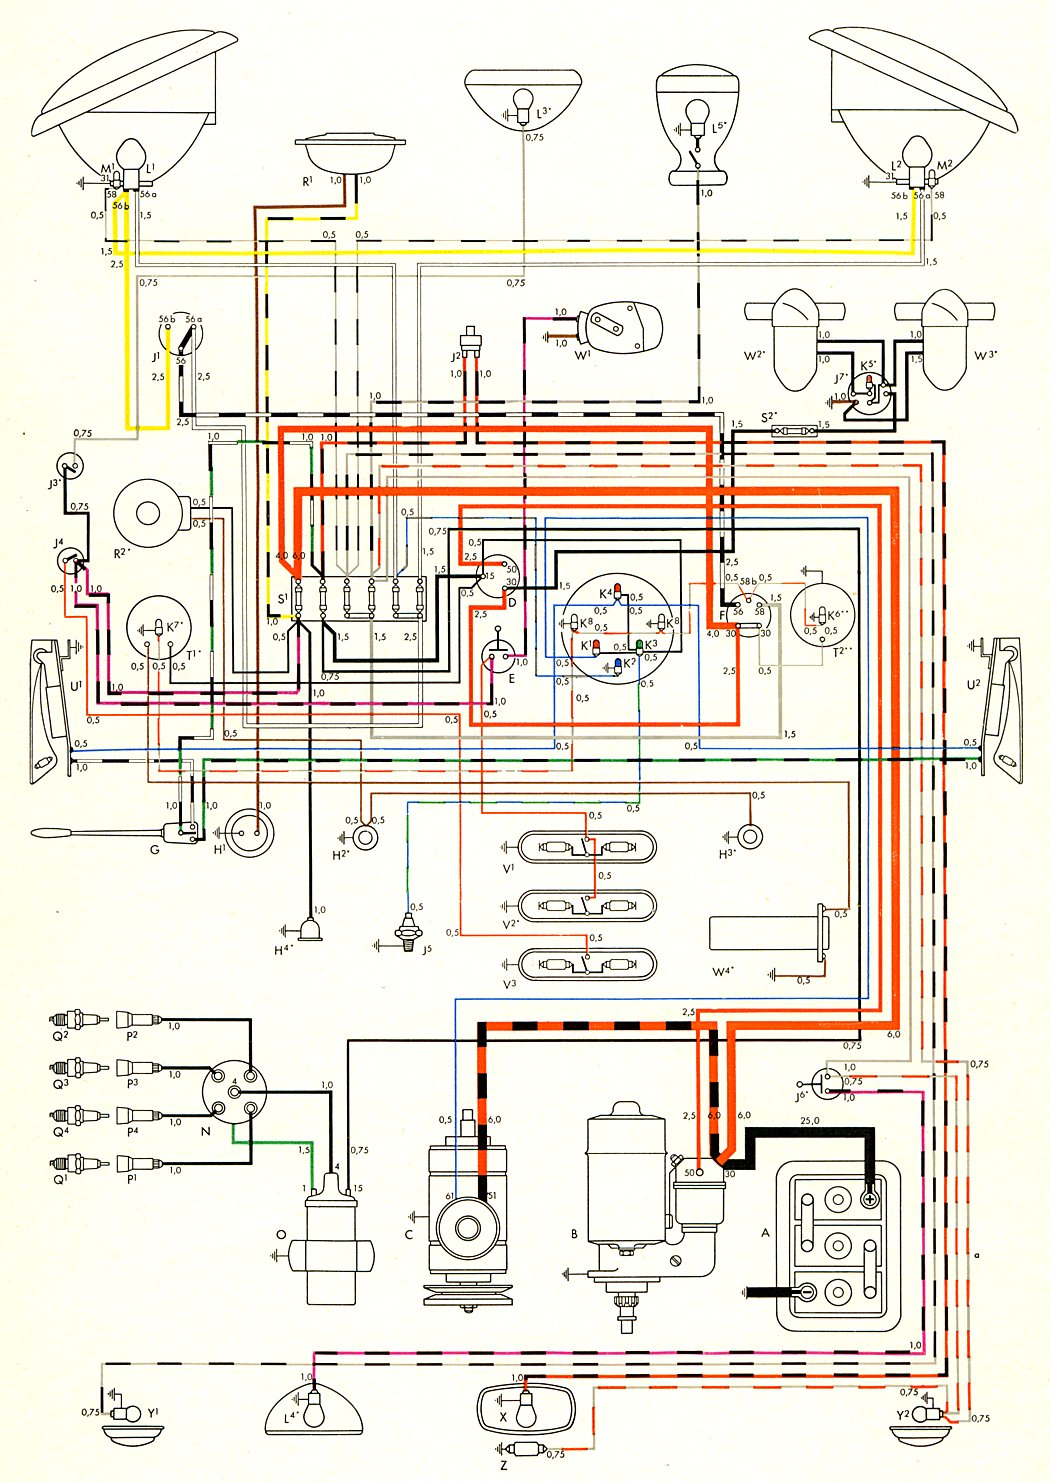 1958 vw bus wiring diagram diy enthusiasts wiring diagrams u2022 rh broadwaycomputers us